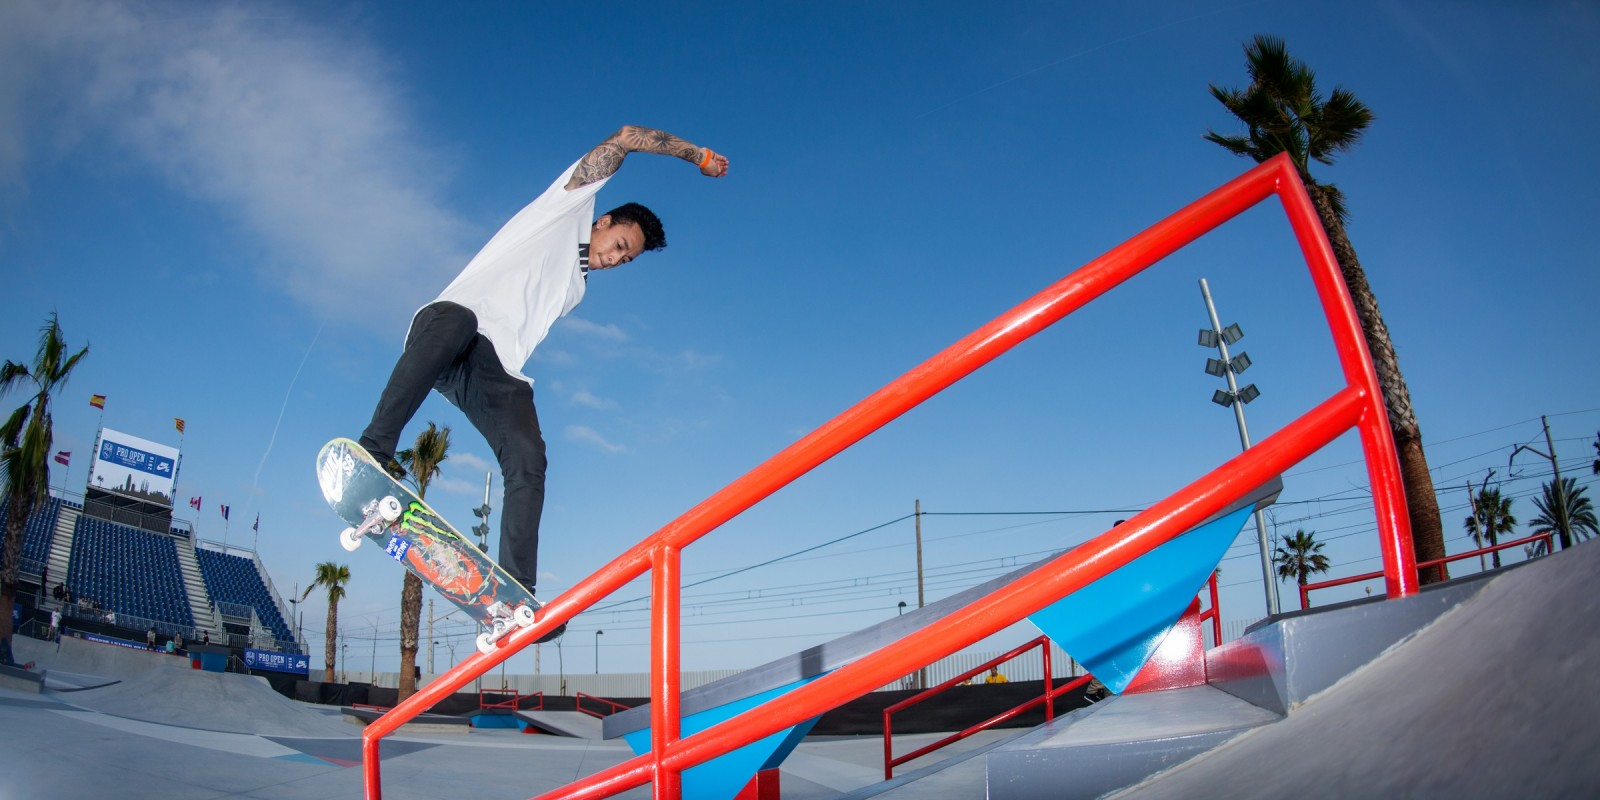 Monster athletes compete in the 2016 SLS tour in Barcelona, Nyjah Huston